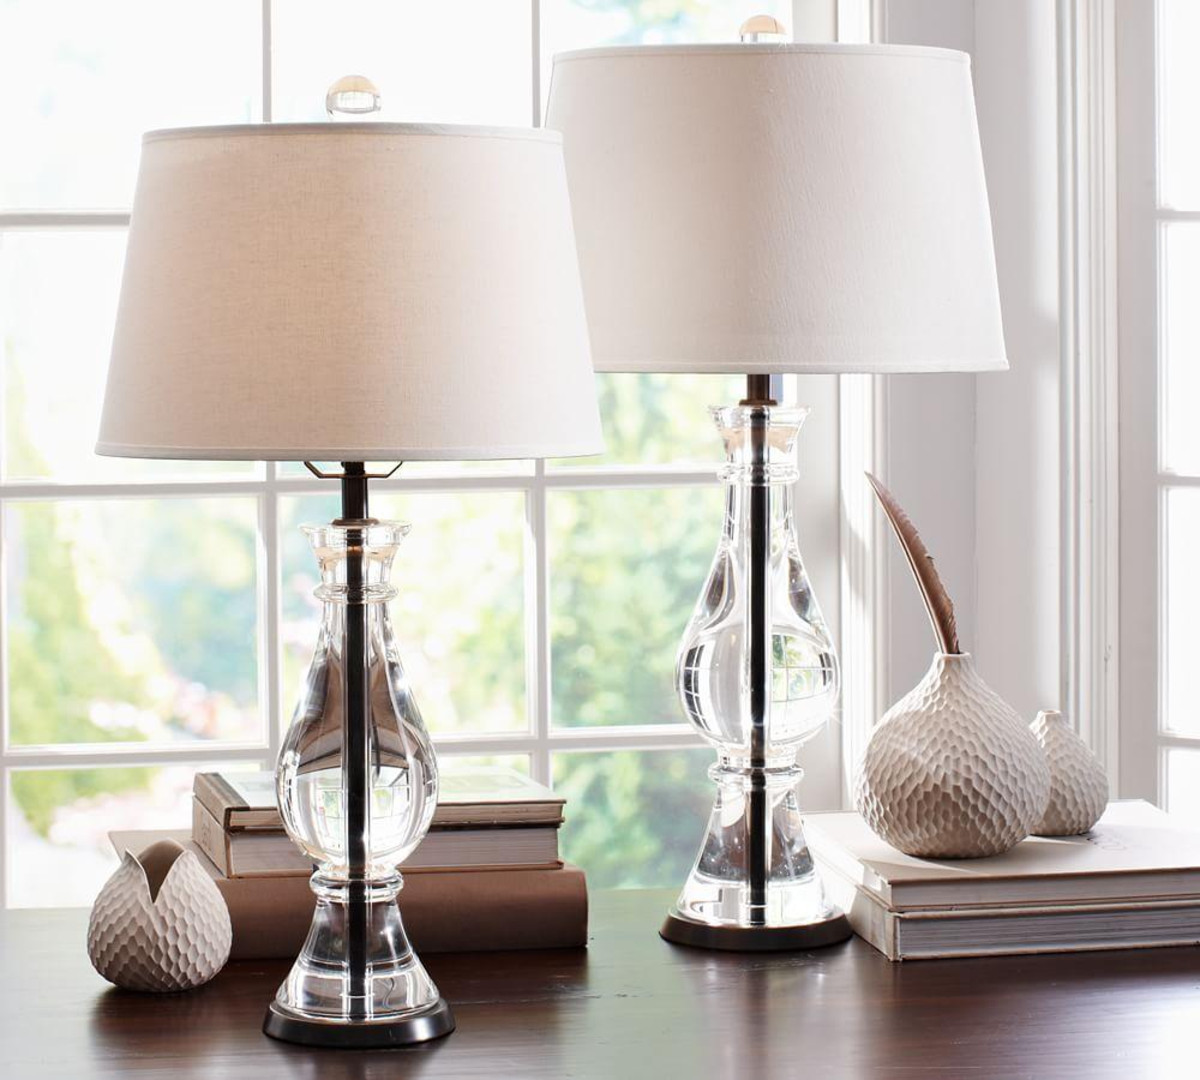 Best ideas about Bedroom Table Lamps . Save or Pin Marston Crystal Table & Bedside Lamp Bases Now.